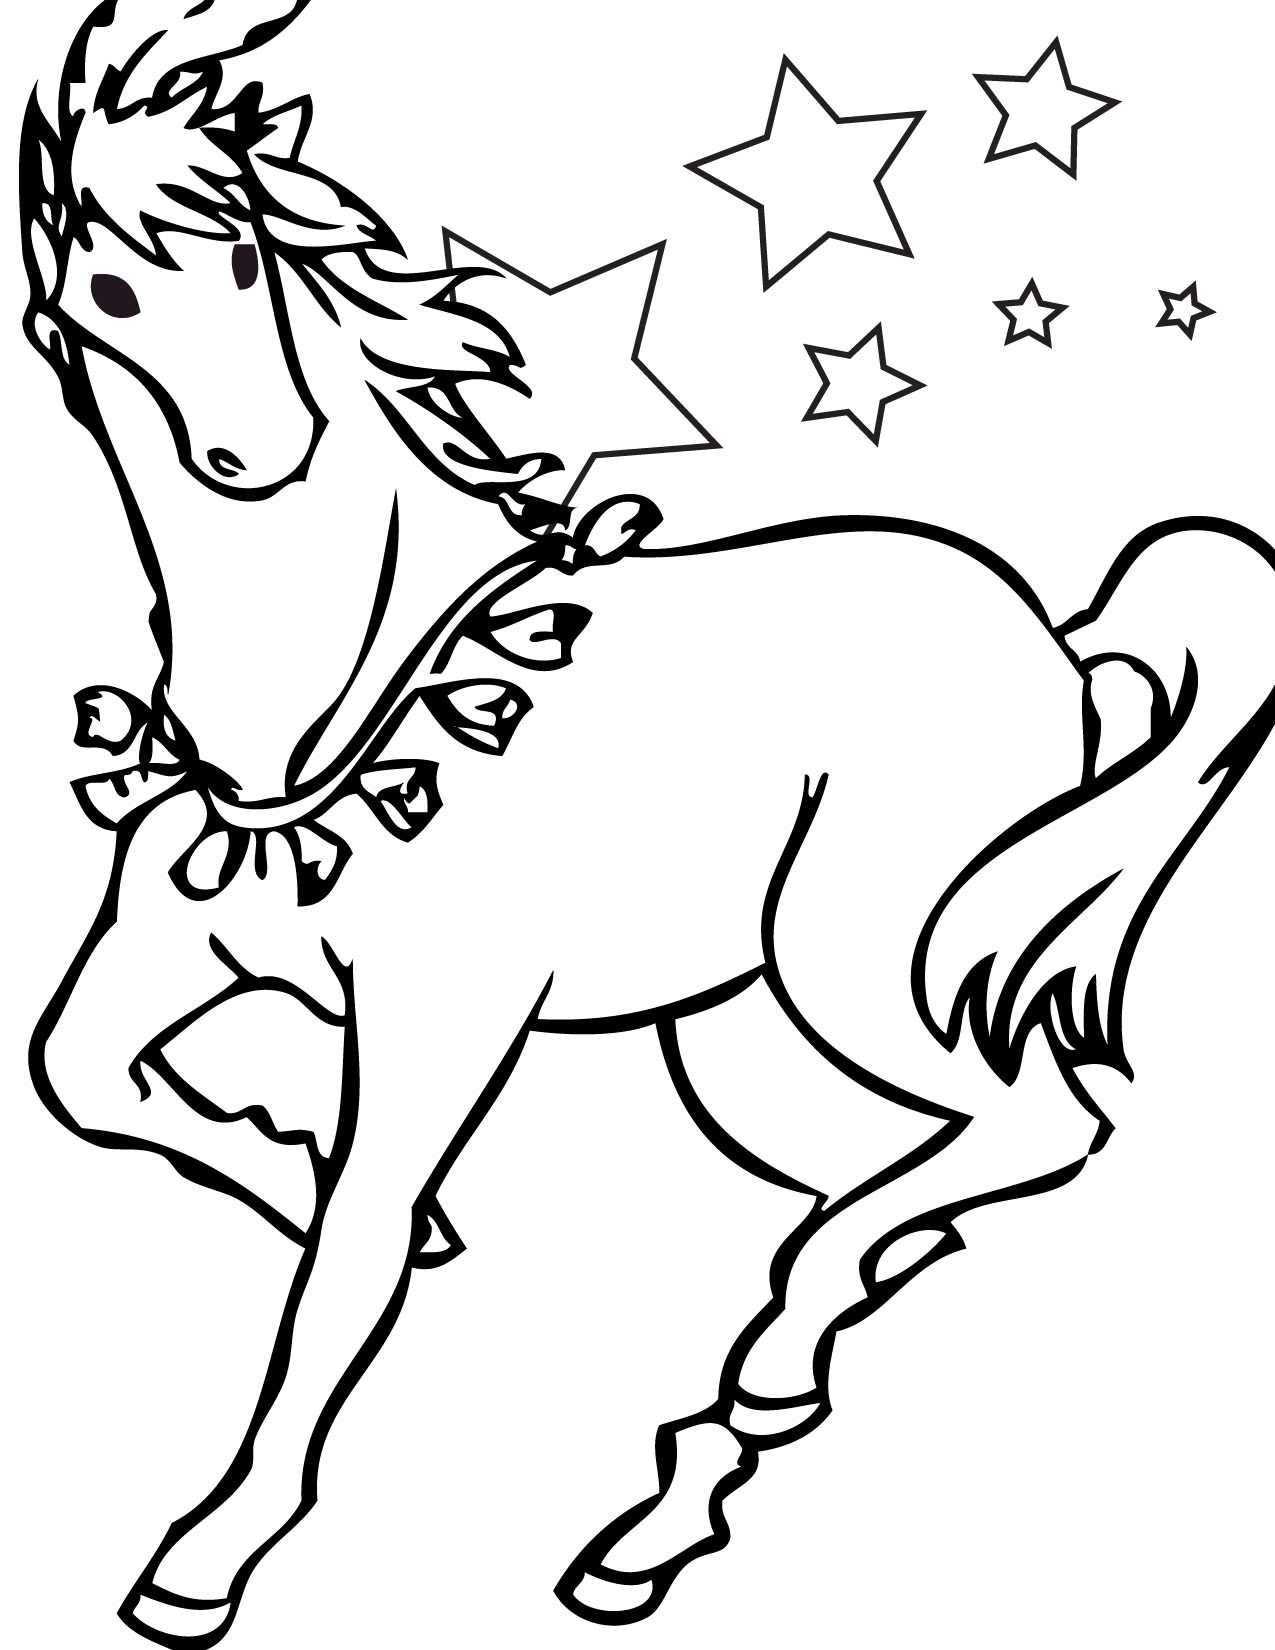 color pages of horses horse coloring pages for adults best coloring pages for kids of horses color pages